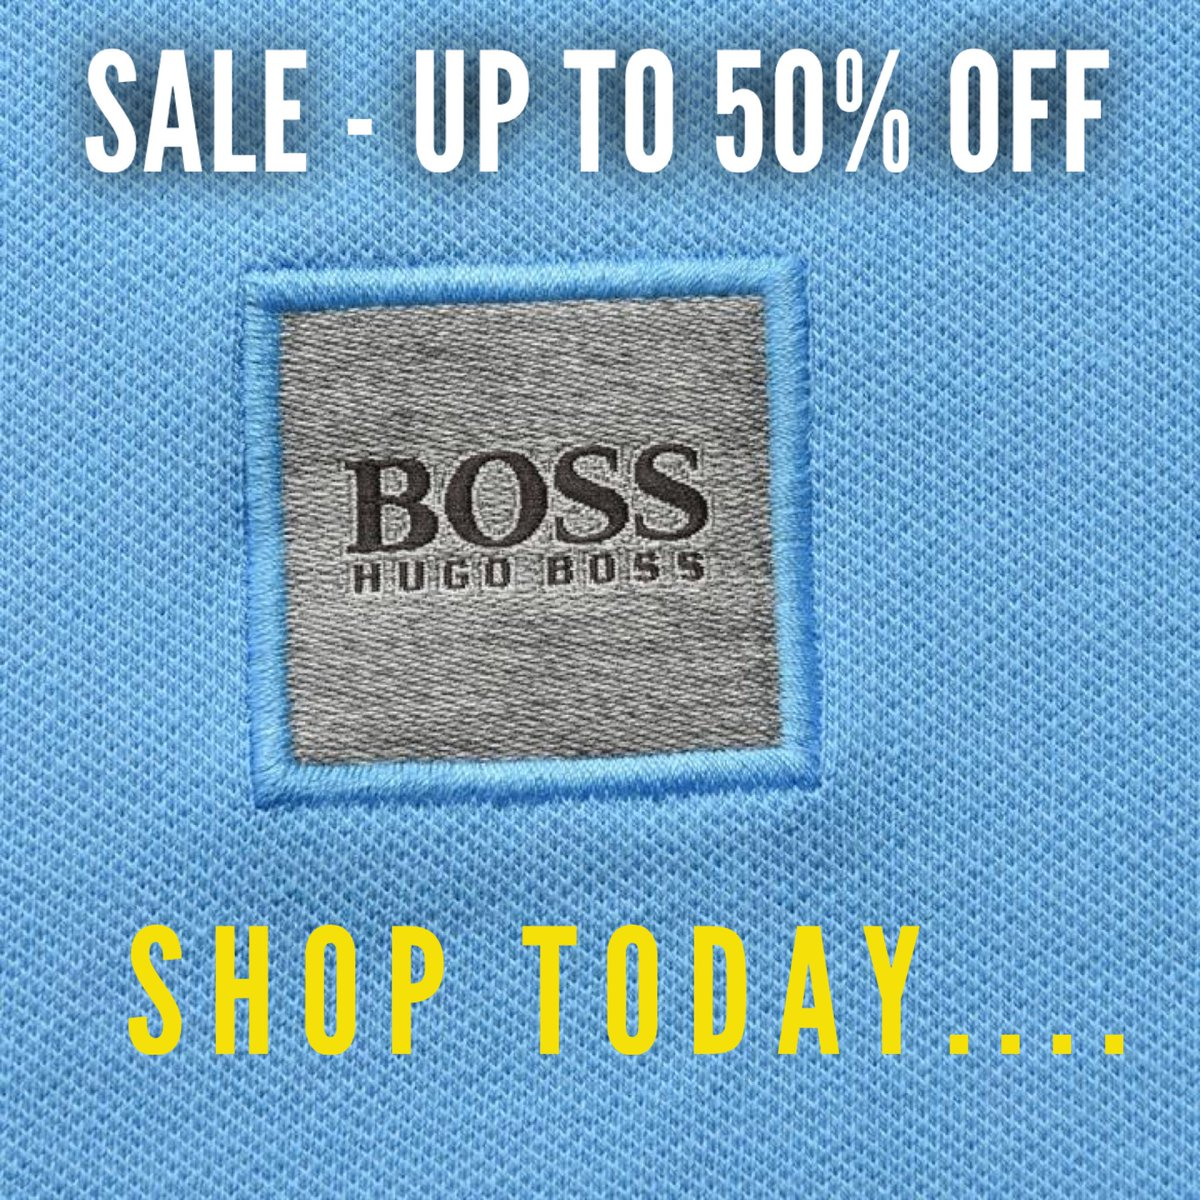 be6fc3c563 ... HUGO Boss now with up to 50% off...includes tees, polos, sweats, jackets  and more.. Shop here: https://bit.ly/2xRejP0 #hugoboss #hugo #boss #sale ...